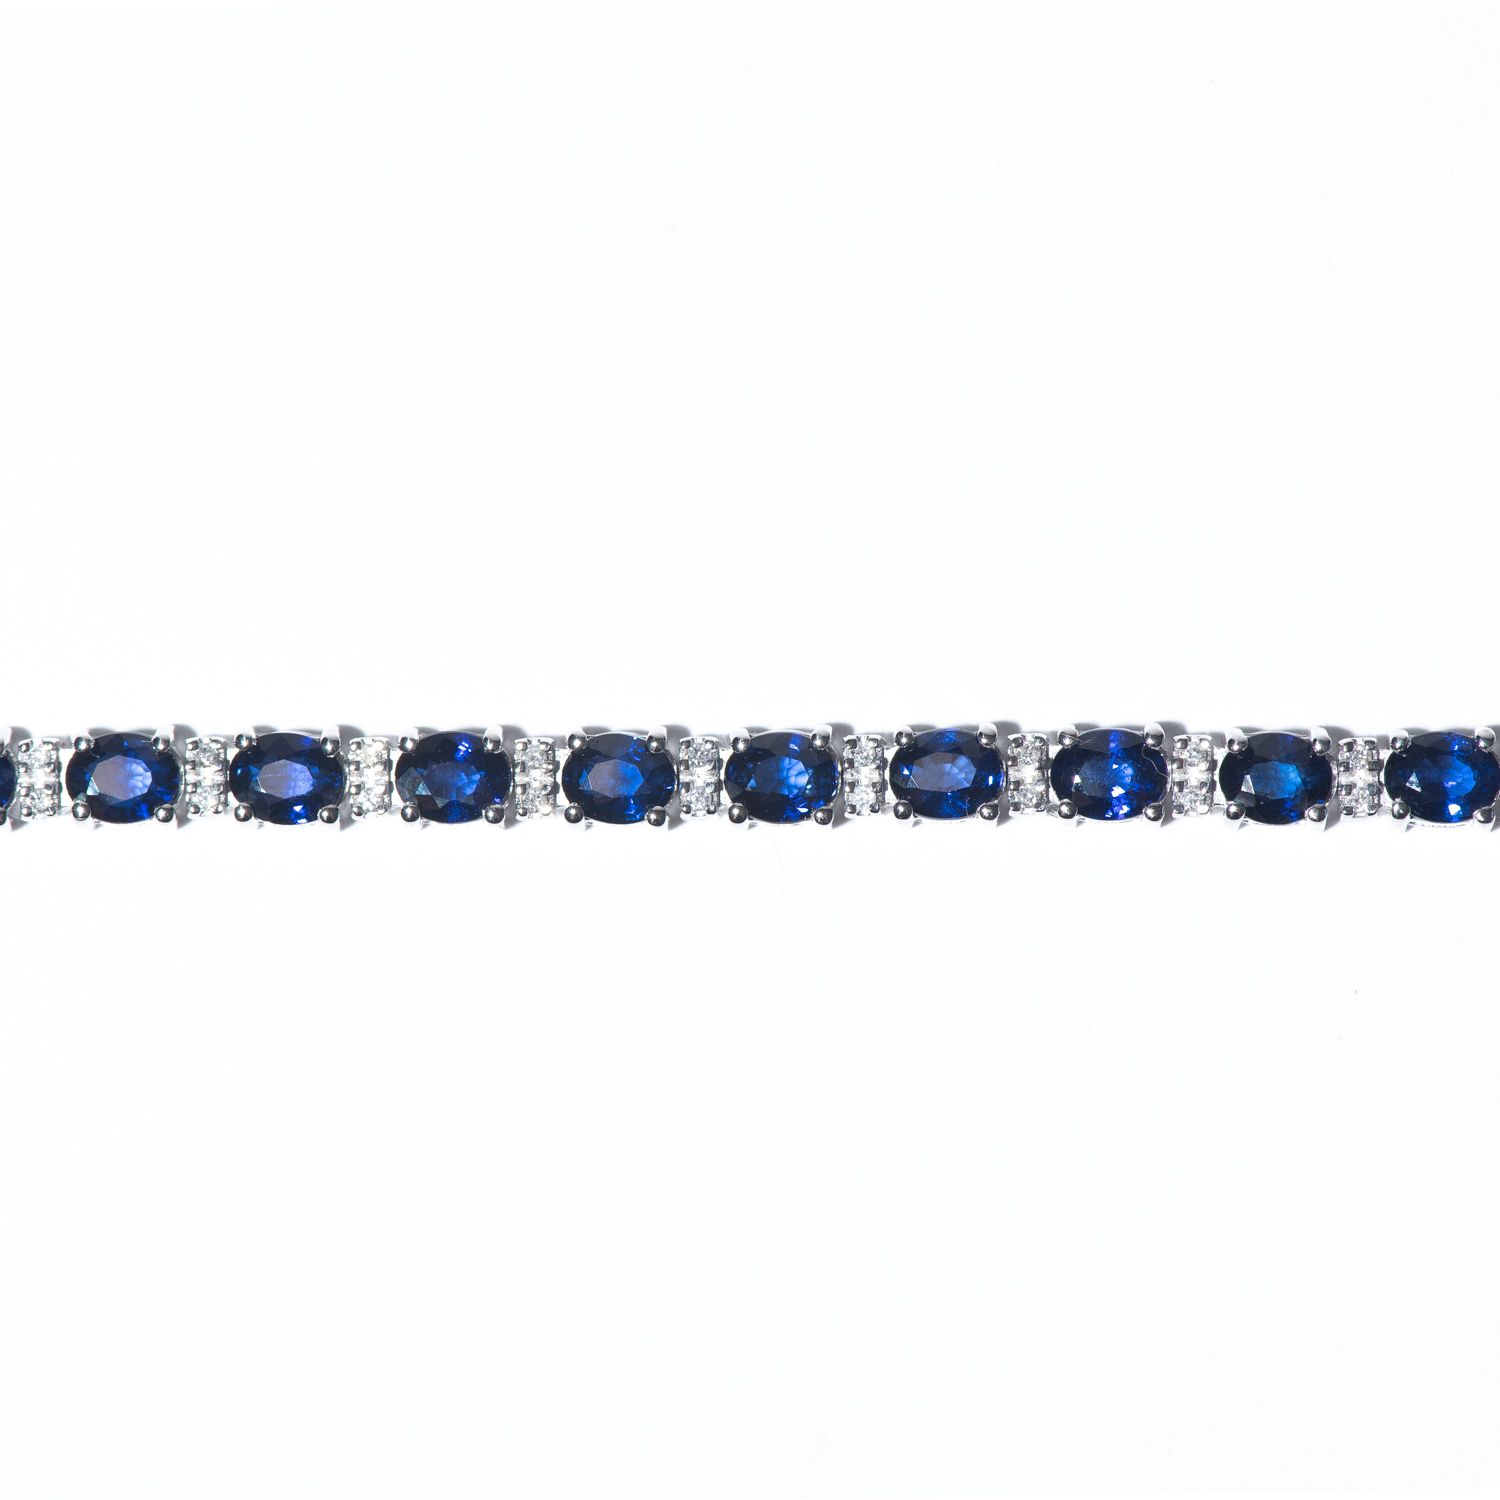 Design Eleven. - 14K White Gold Sapphire and Diamond Link Bracelet.